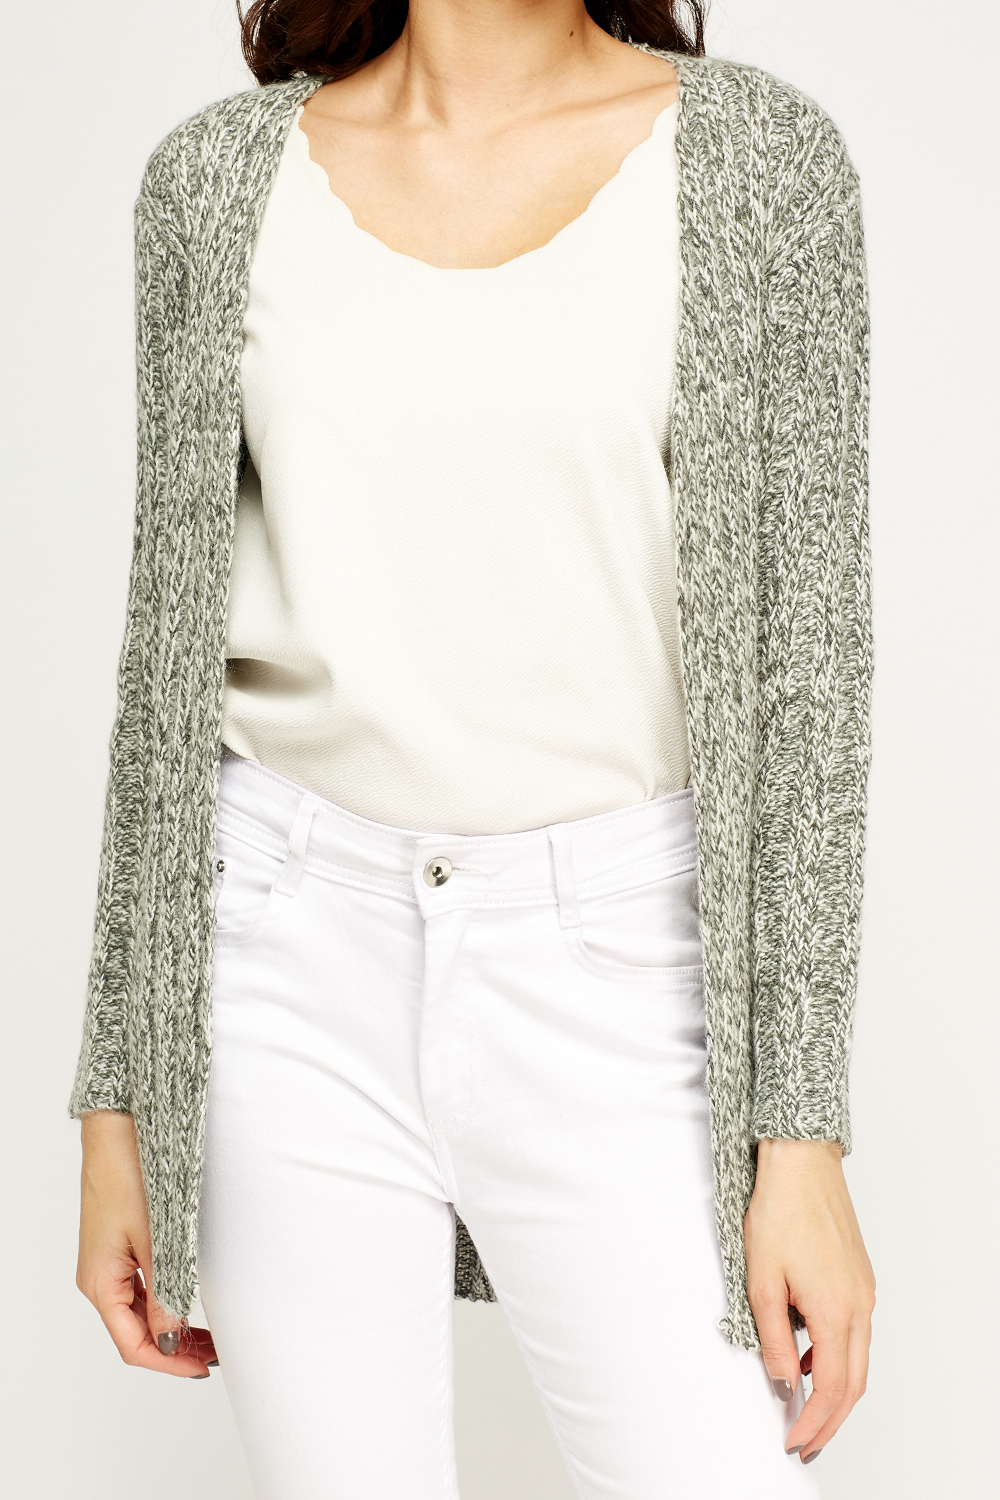 Speckled Knit Open Front Cardigan - Just ?5